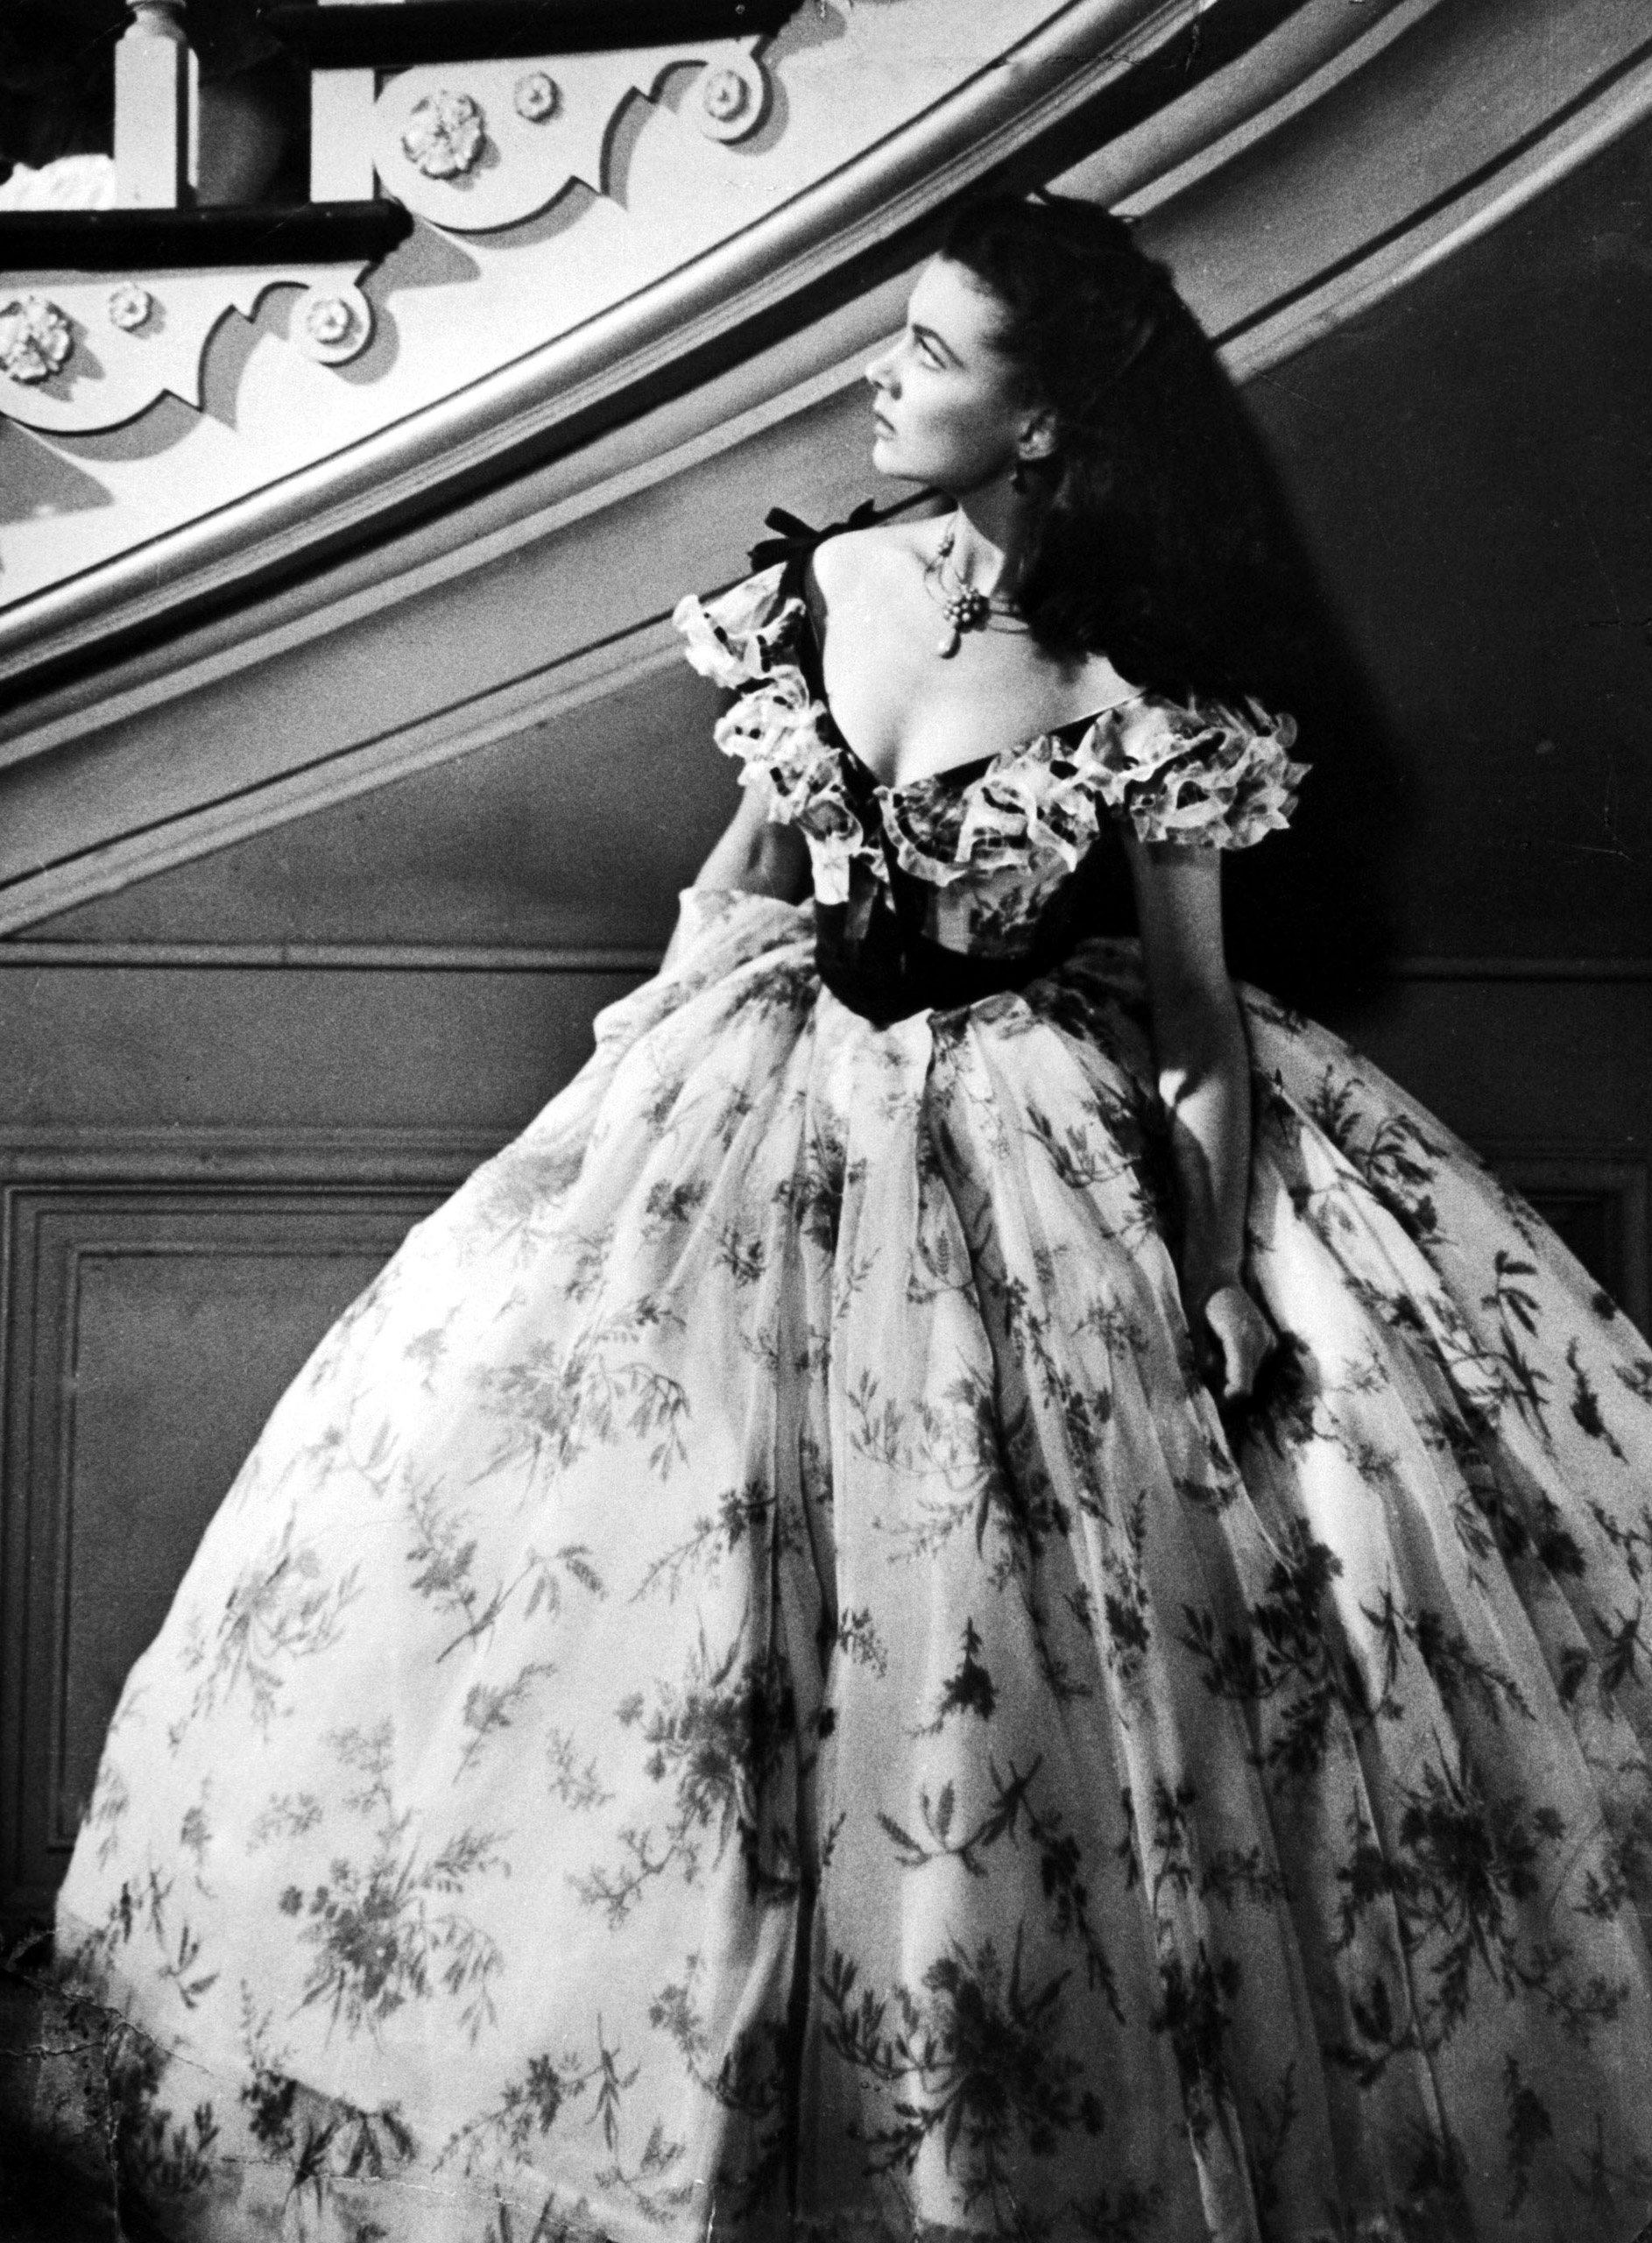 """If you're handy with a sewing machine, fashion an antebellum dress in the style of Vivien Leigh's Scarlet O'Hara in the 1939 classic """"Gone with the Wind.""""."""